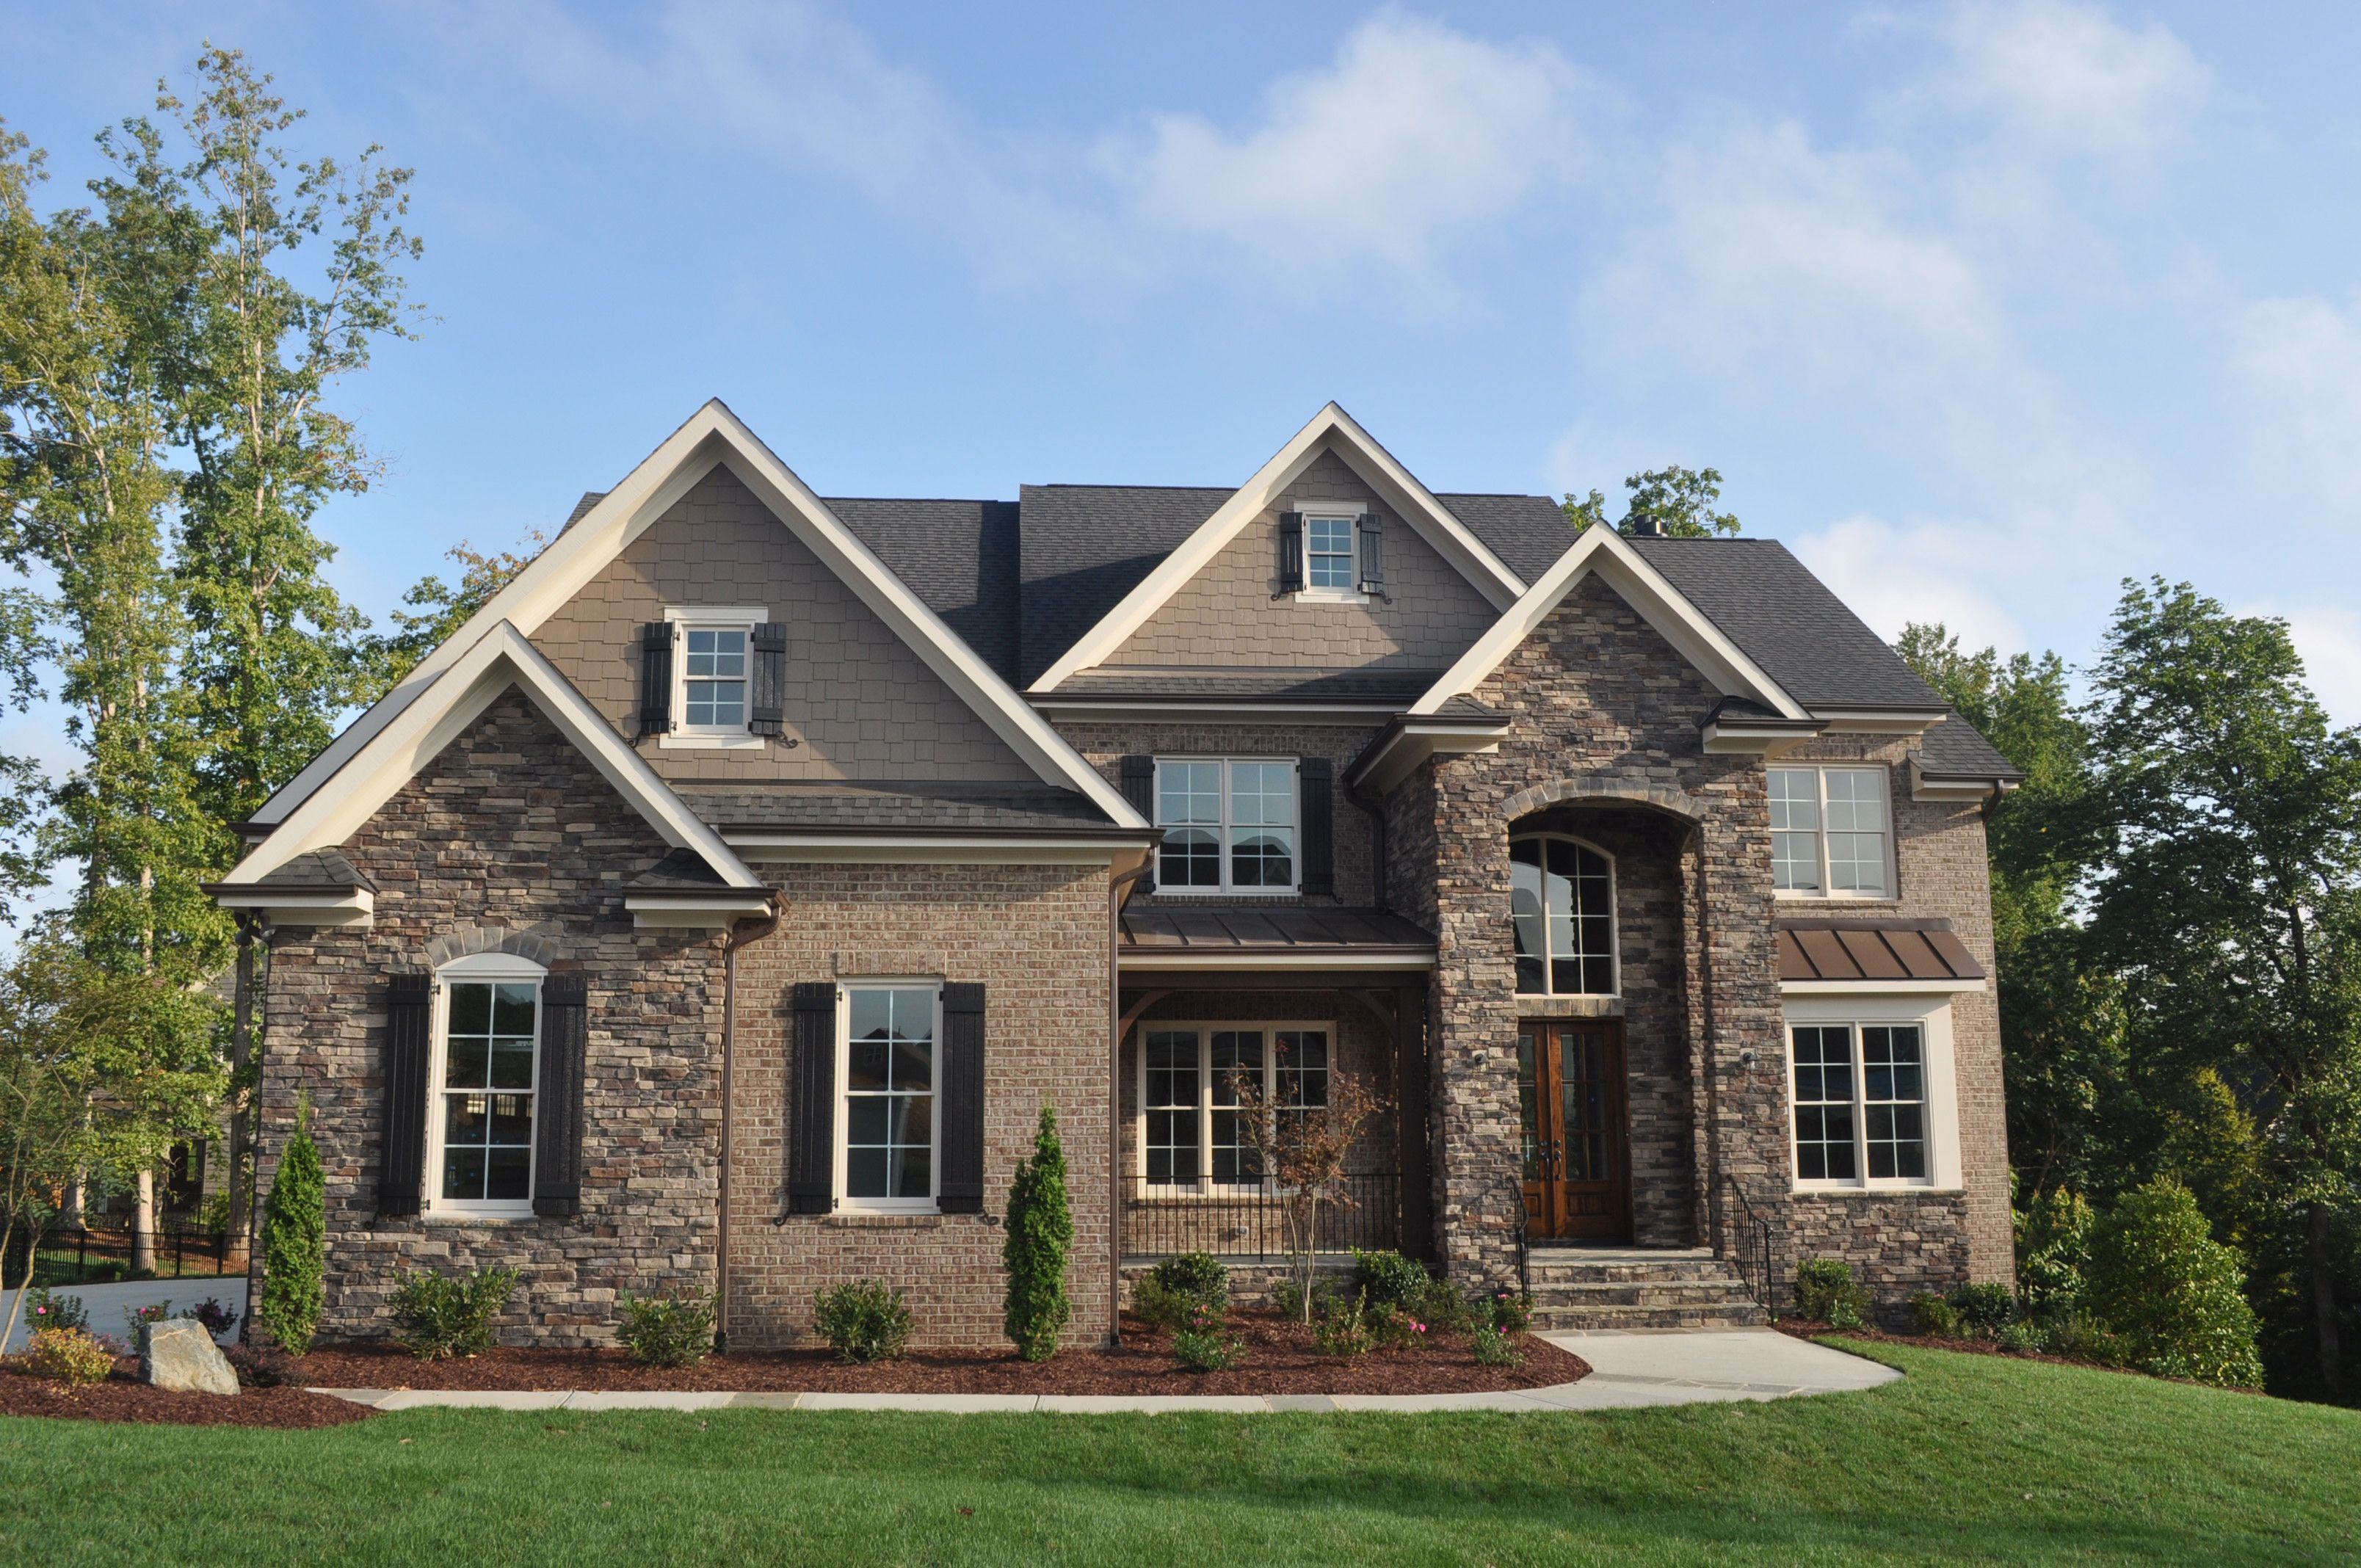 Exterior with stone brick and siding dream homes for Brick stone siding